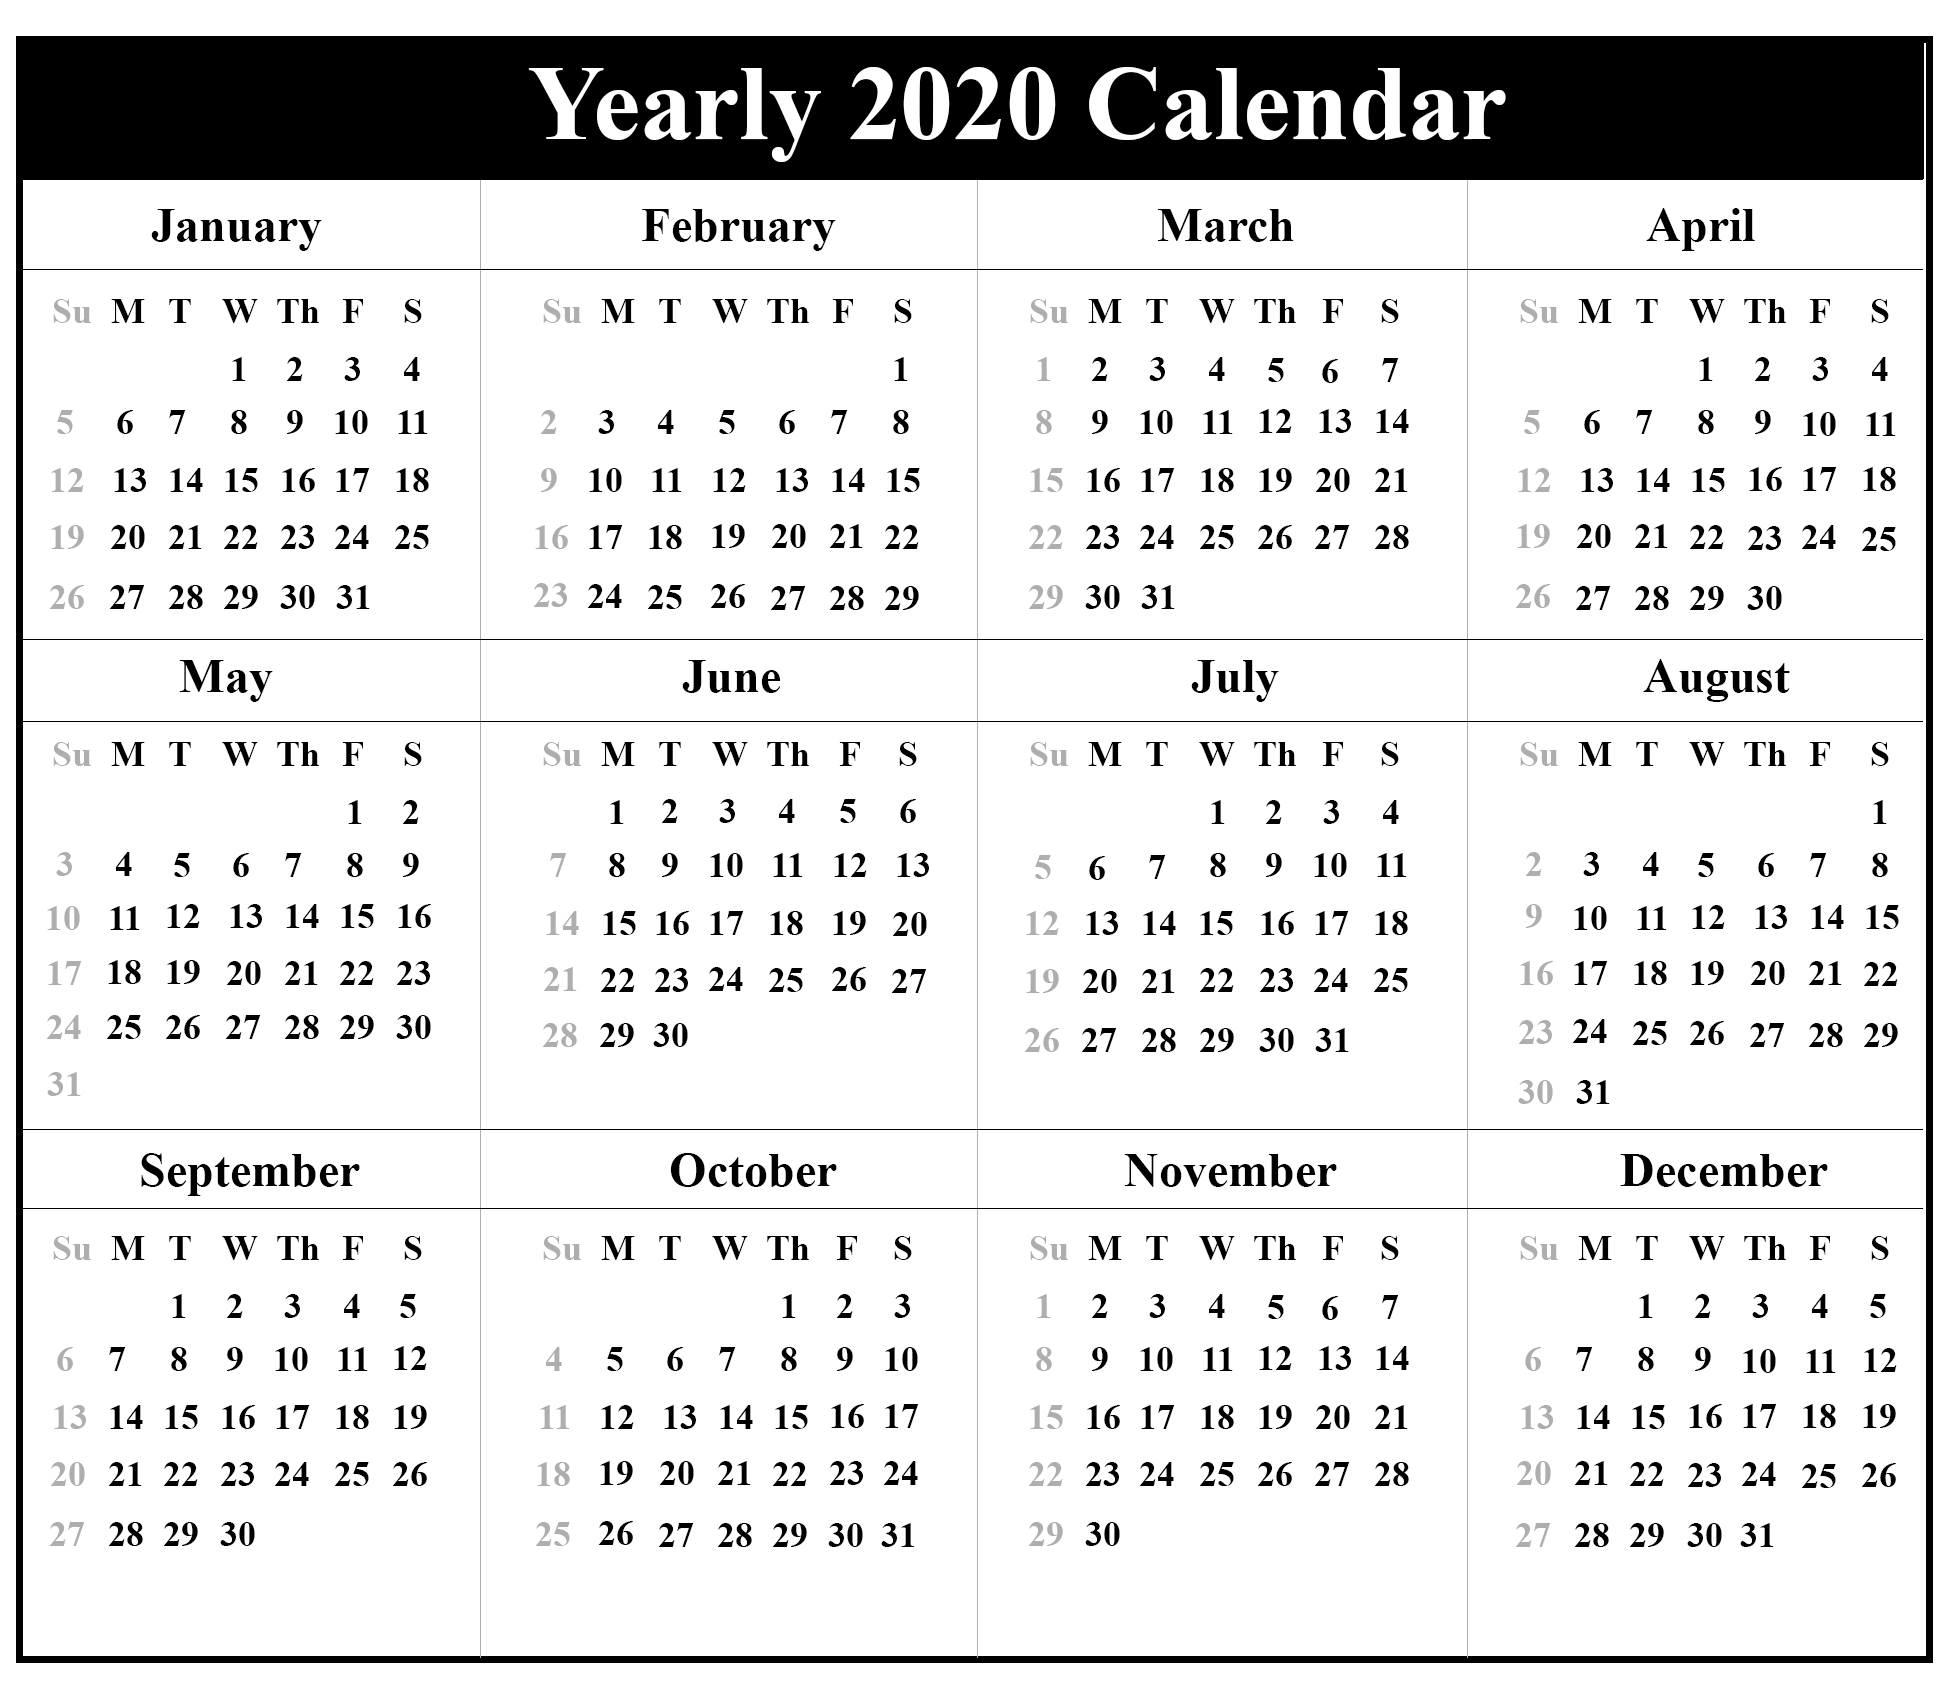 Nanakshahi Calendar 2020 January | Calendar Template Printable intended for Khalsa Heera Jantri 2020 January